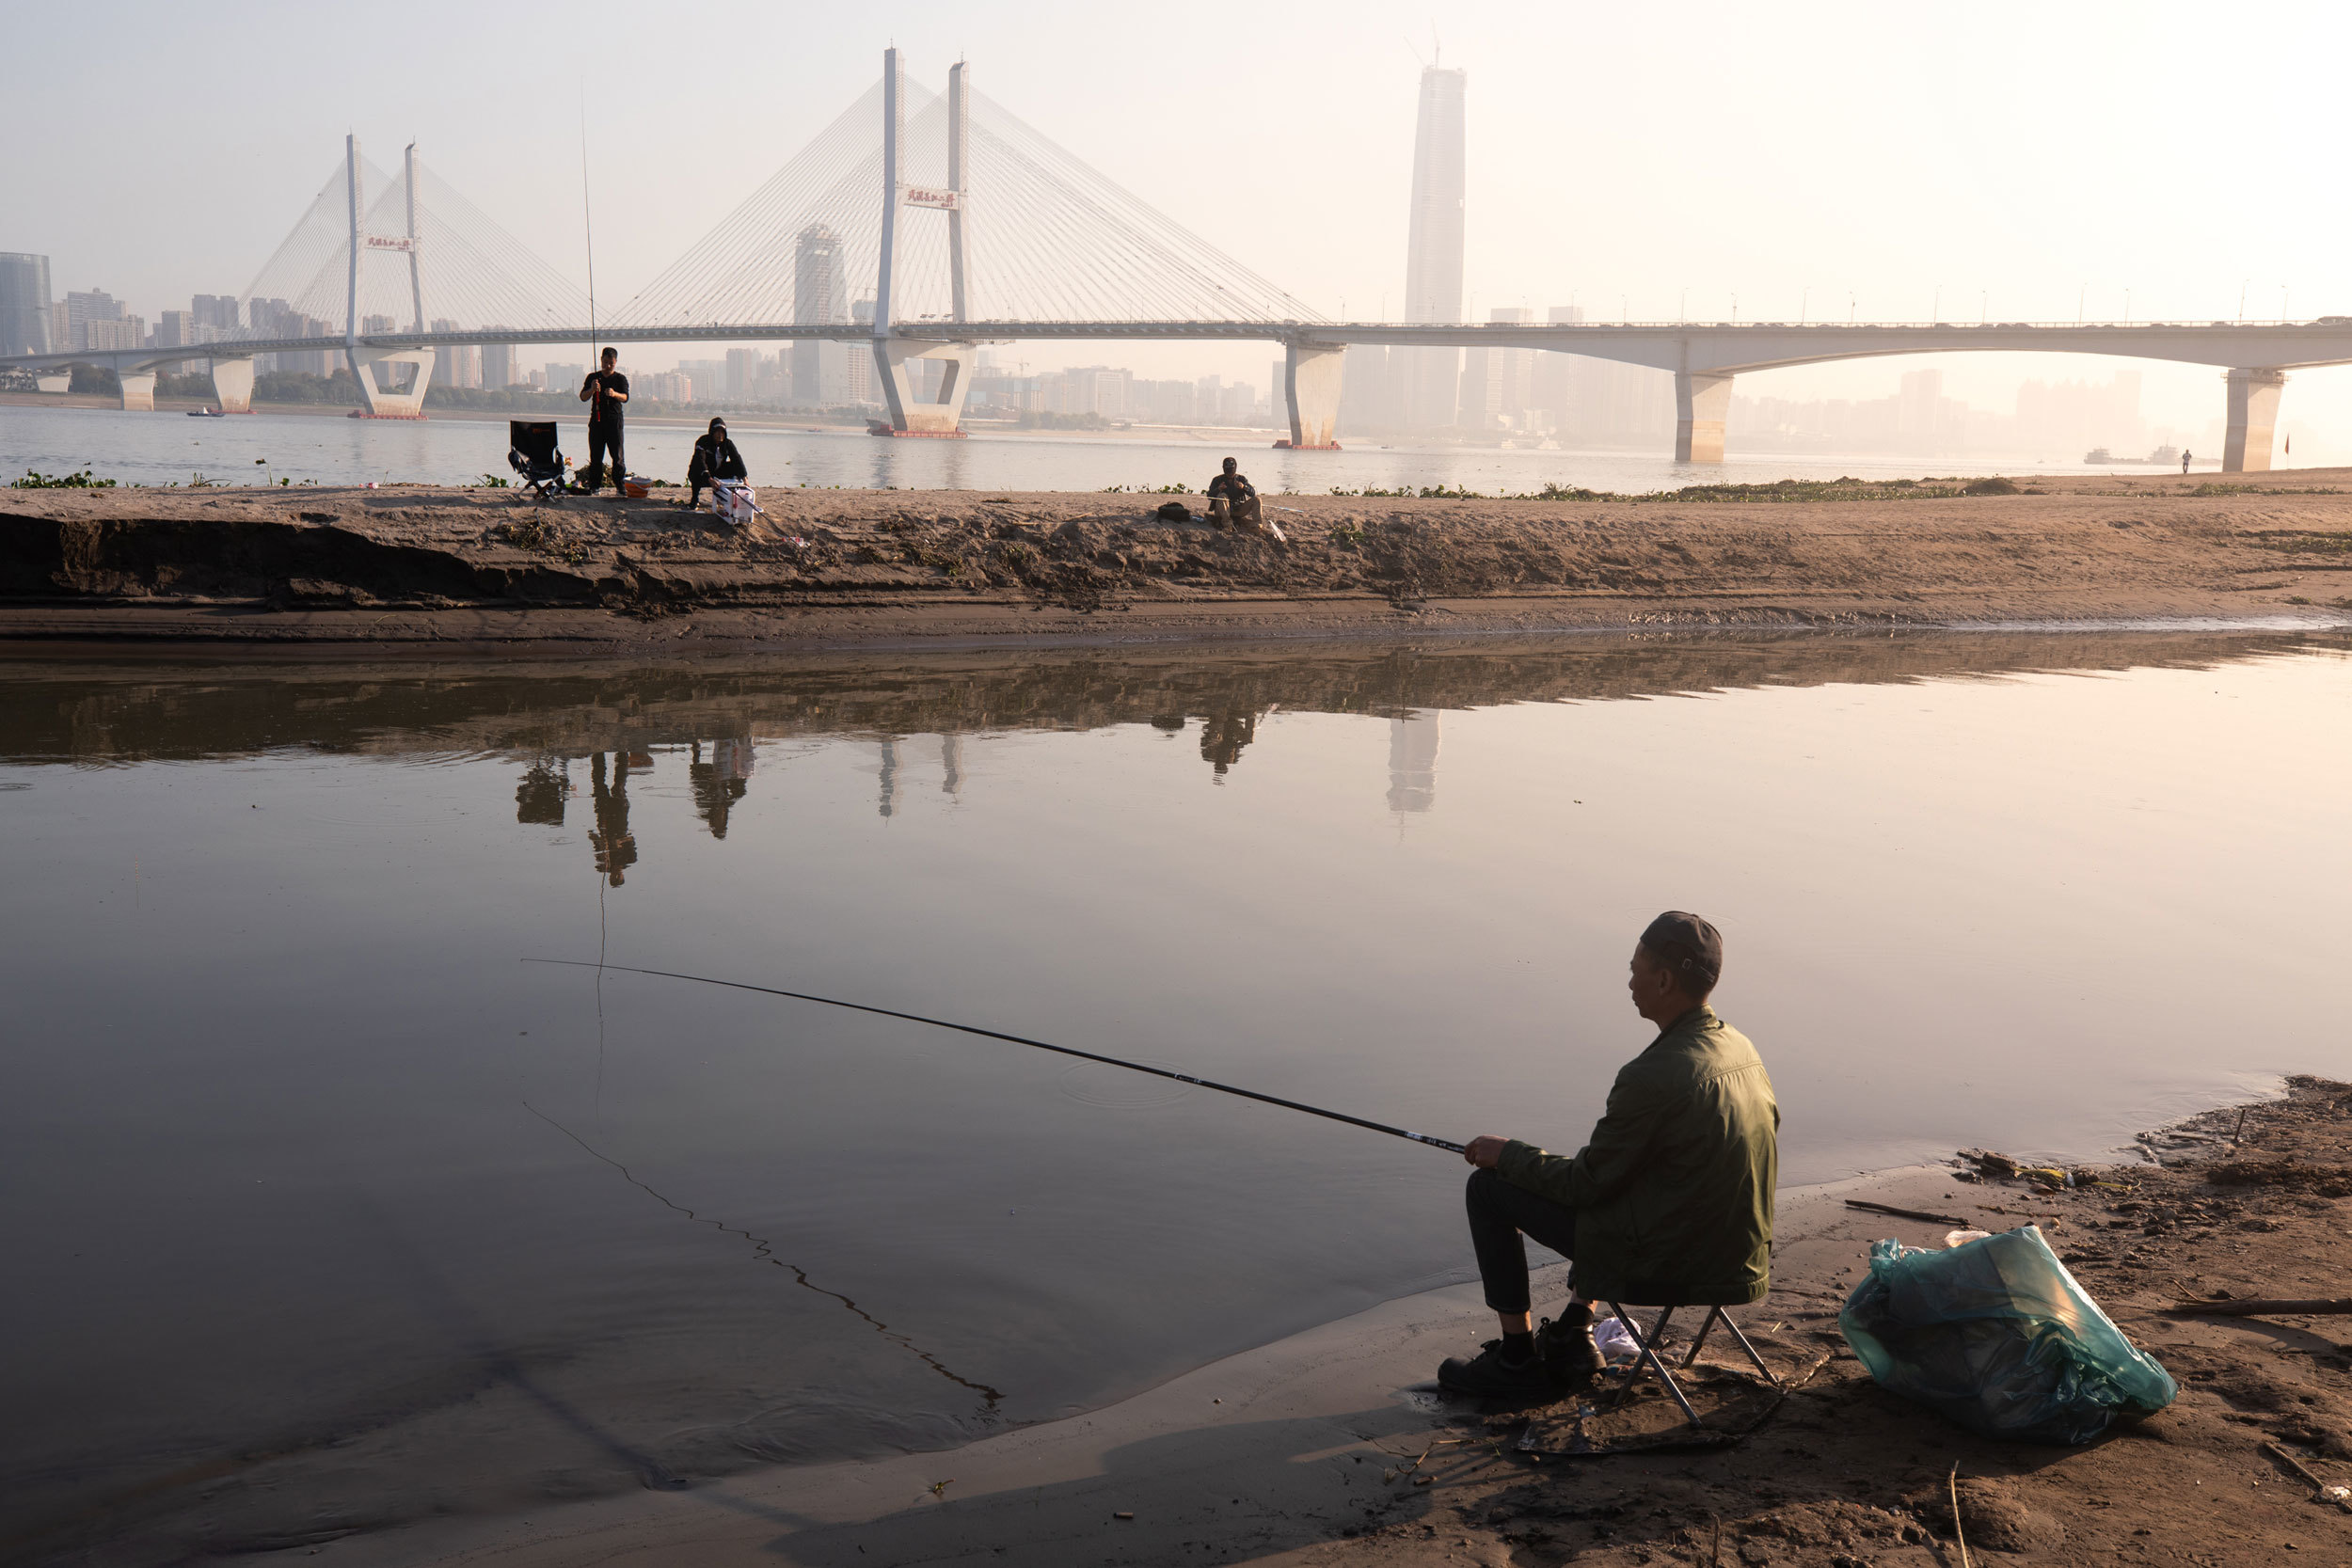 Shoppers once again crowd Wuhan's Jianghan commercial street. Meanwhile, lazy afternoons fishing on the banks of the Yangtze River have also returned. (Saša Petricic/CBC)